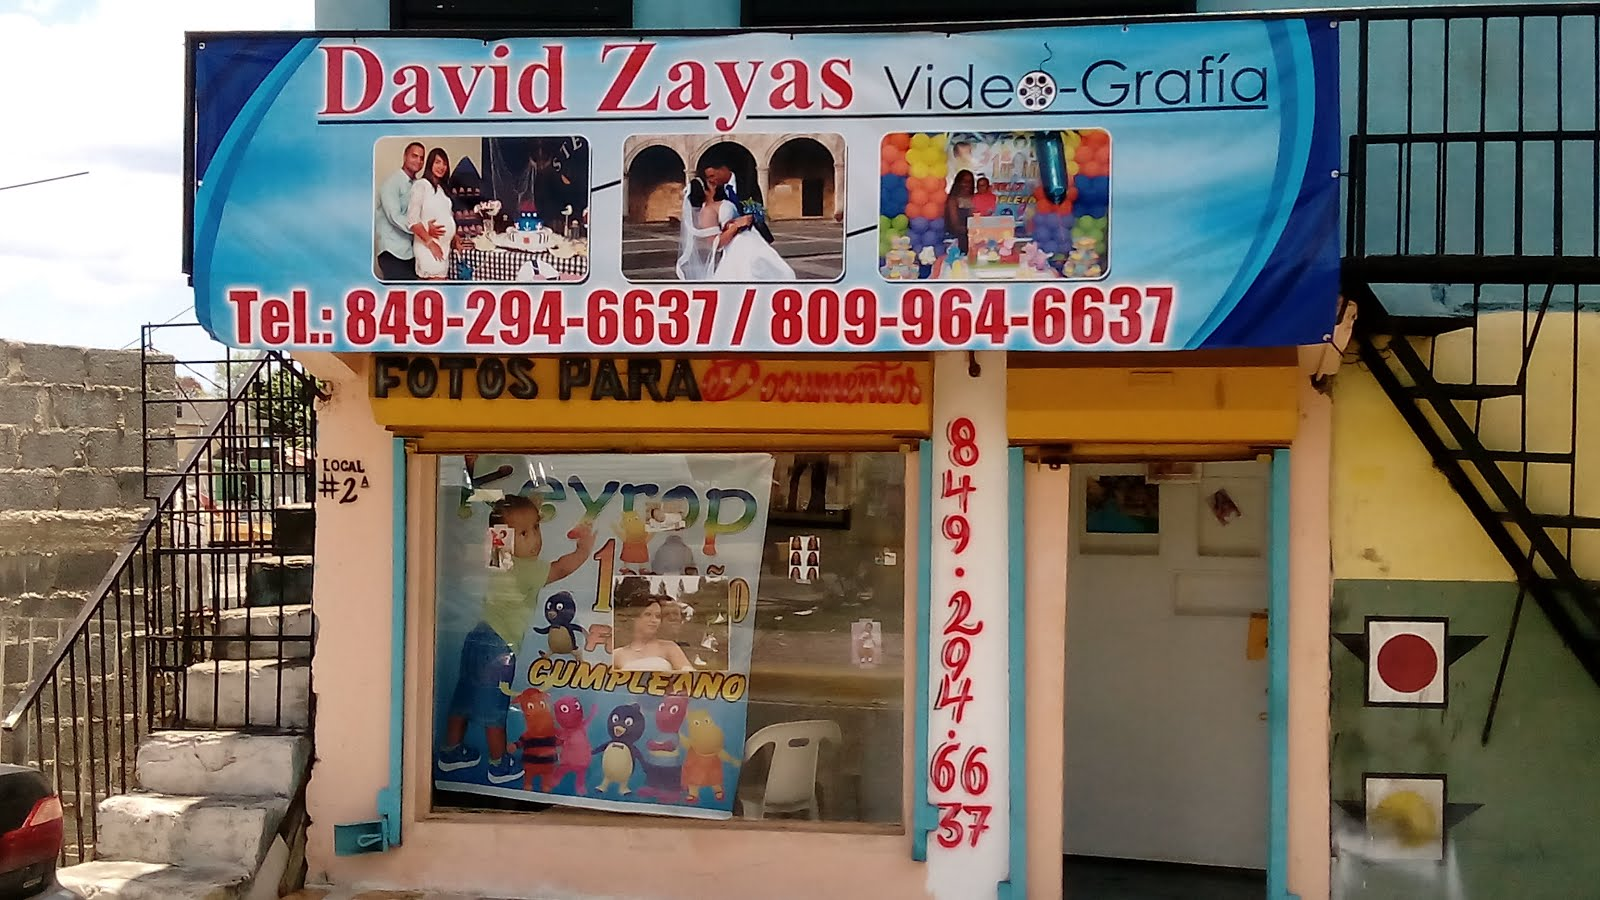 DAVID ZAYAS VIDEO GRAFIC